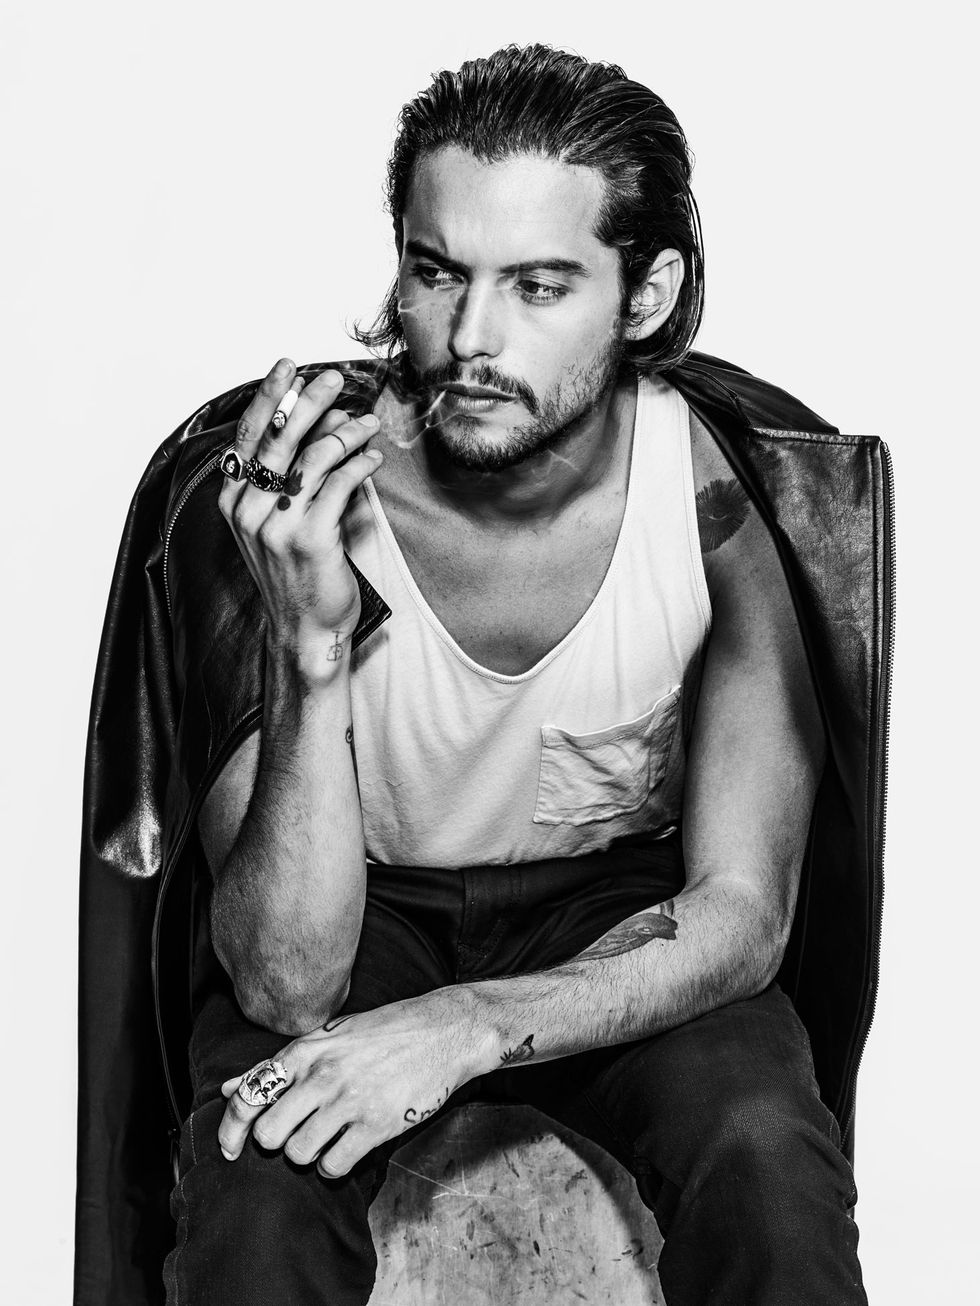 Pro Skateboarder Dylan Rieder Brings Style to the Streets